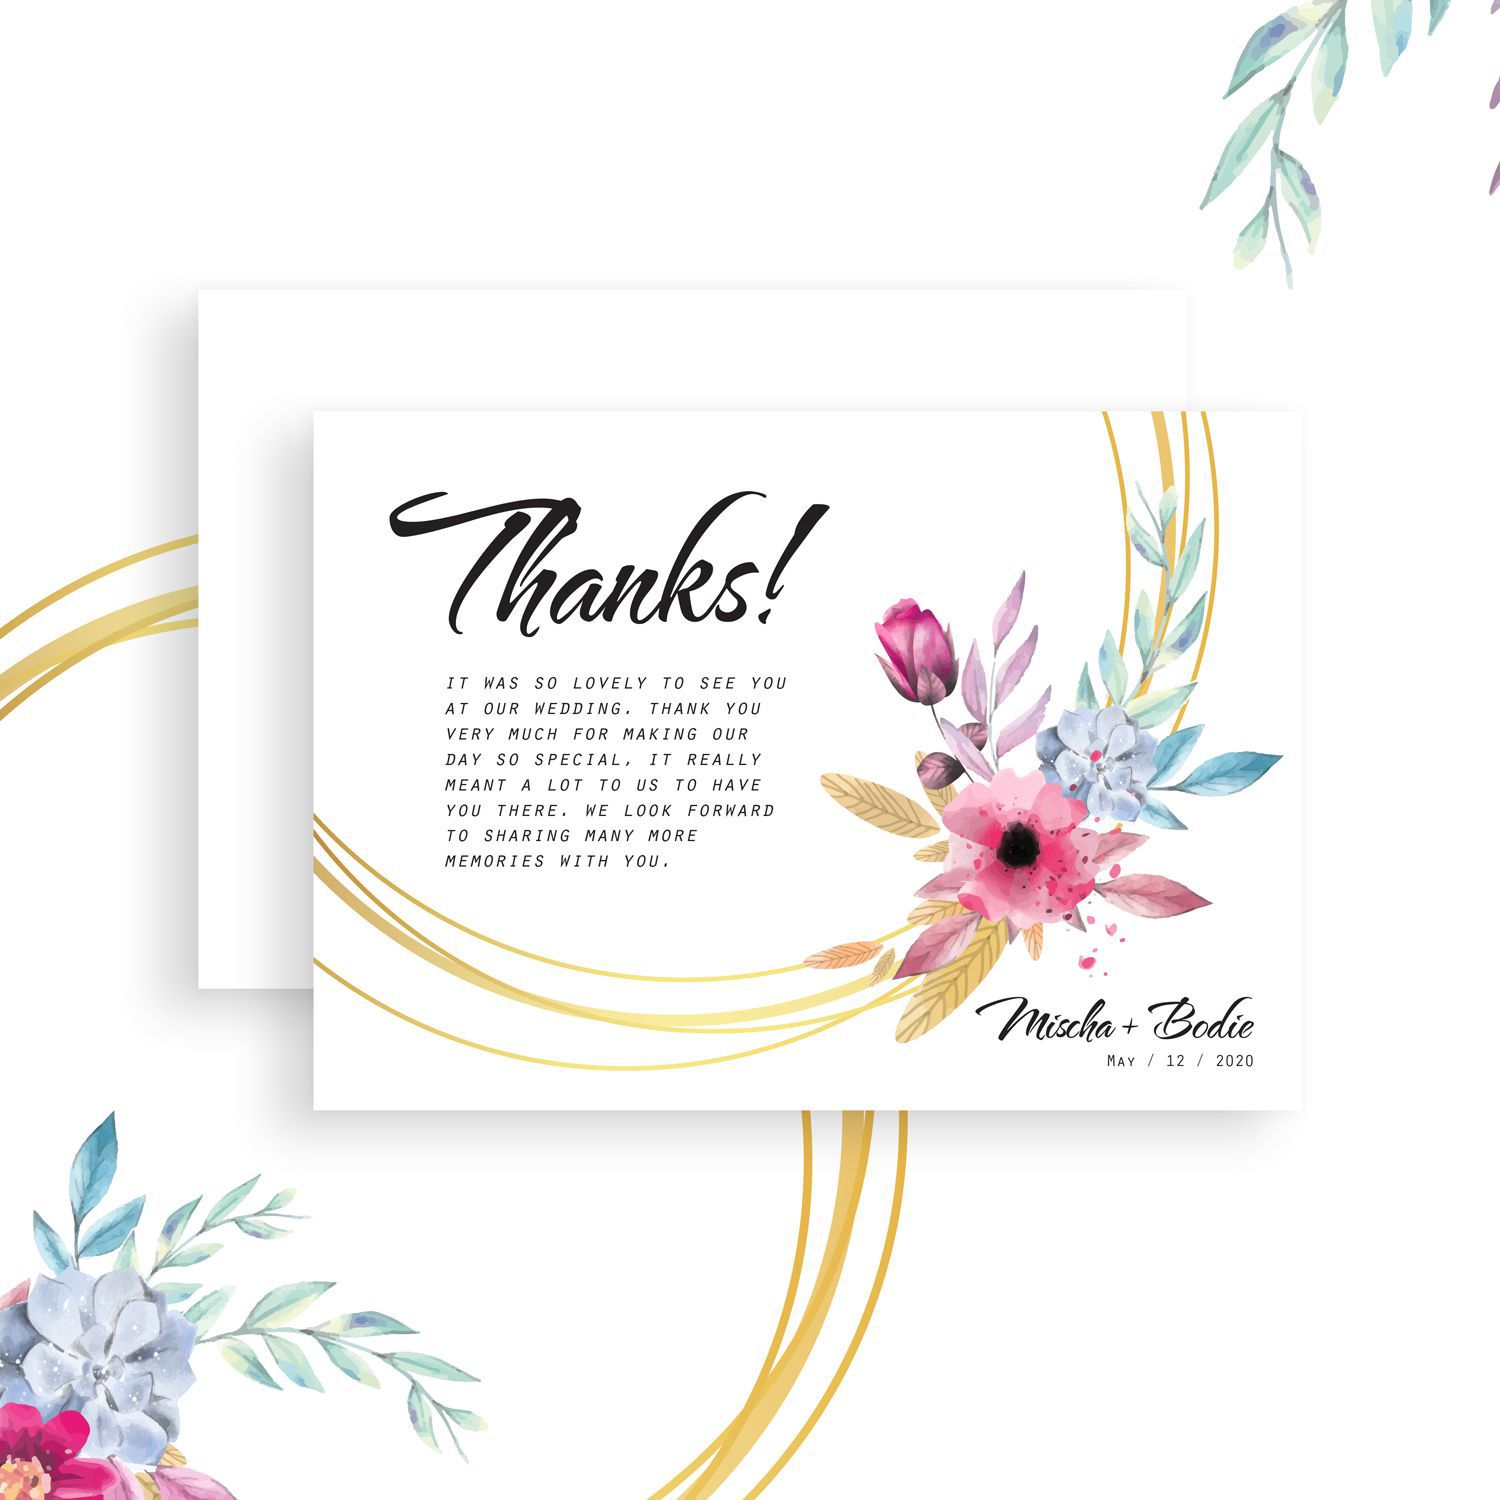 009 Awesome Diy Wedding Thank You Card Template Design  TemplatesFull